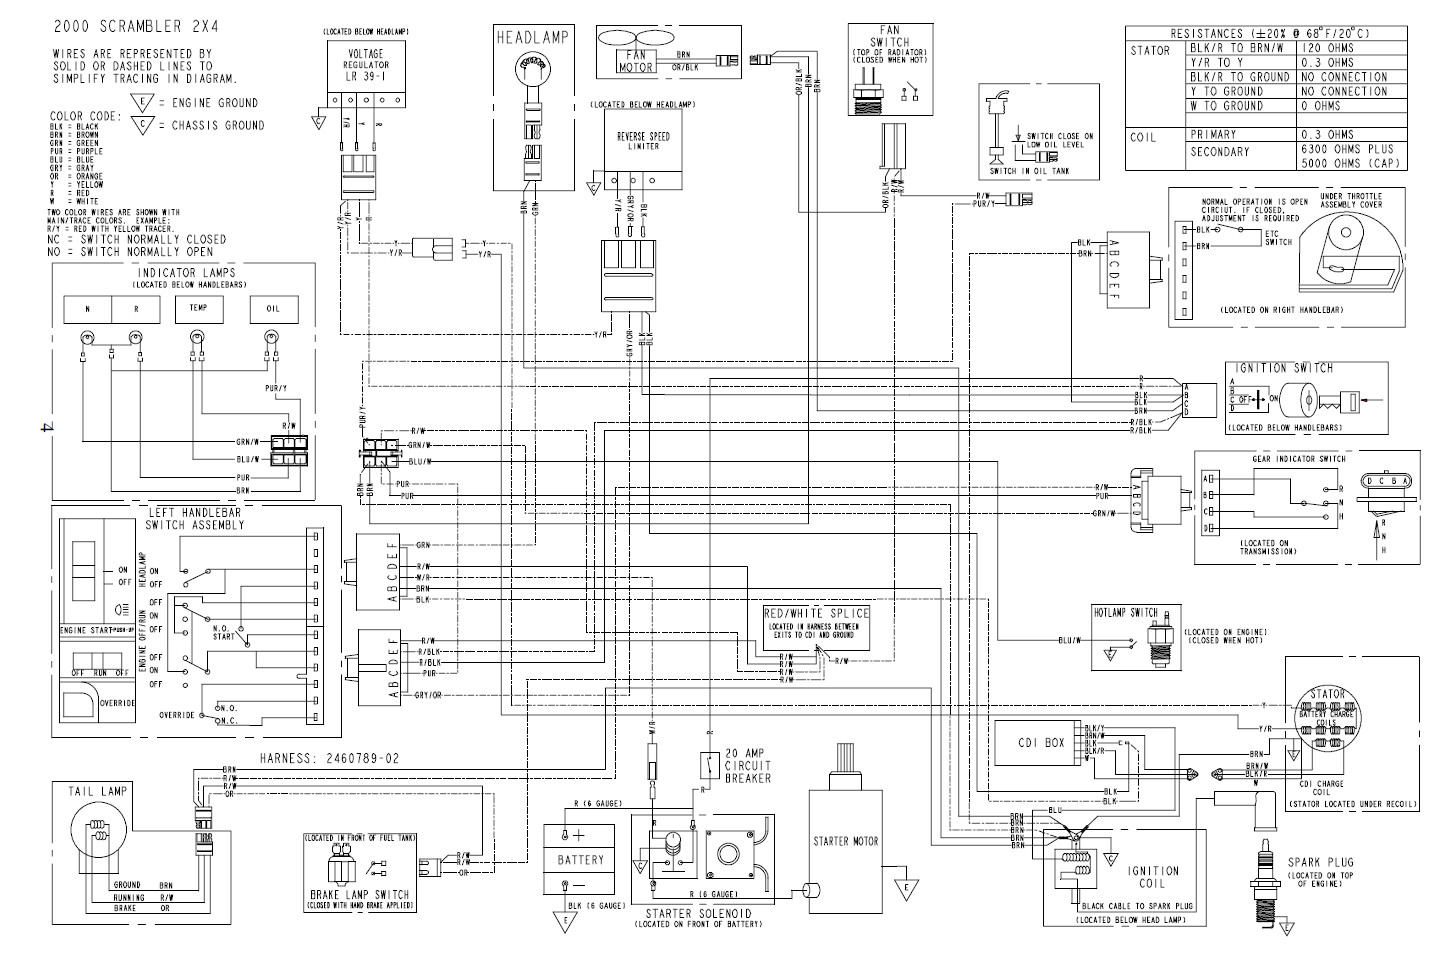 toshiba 1600 xp wiring diagram 2017 polaris ranger 900 wiring diagram - wiring diagram